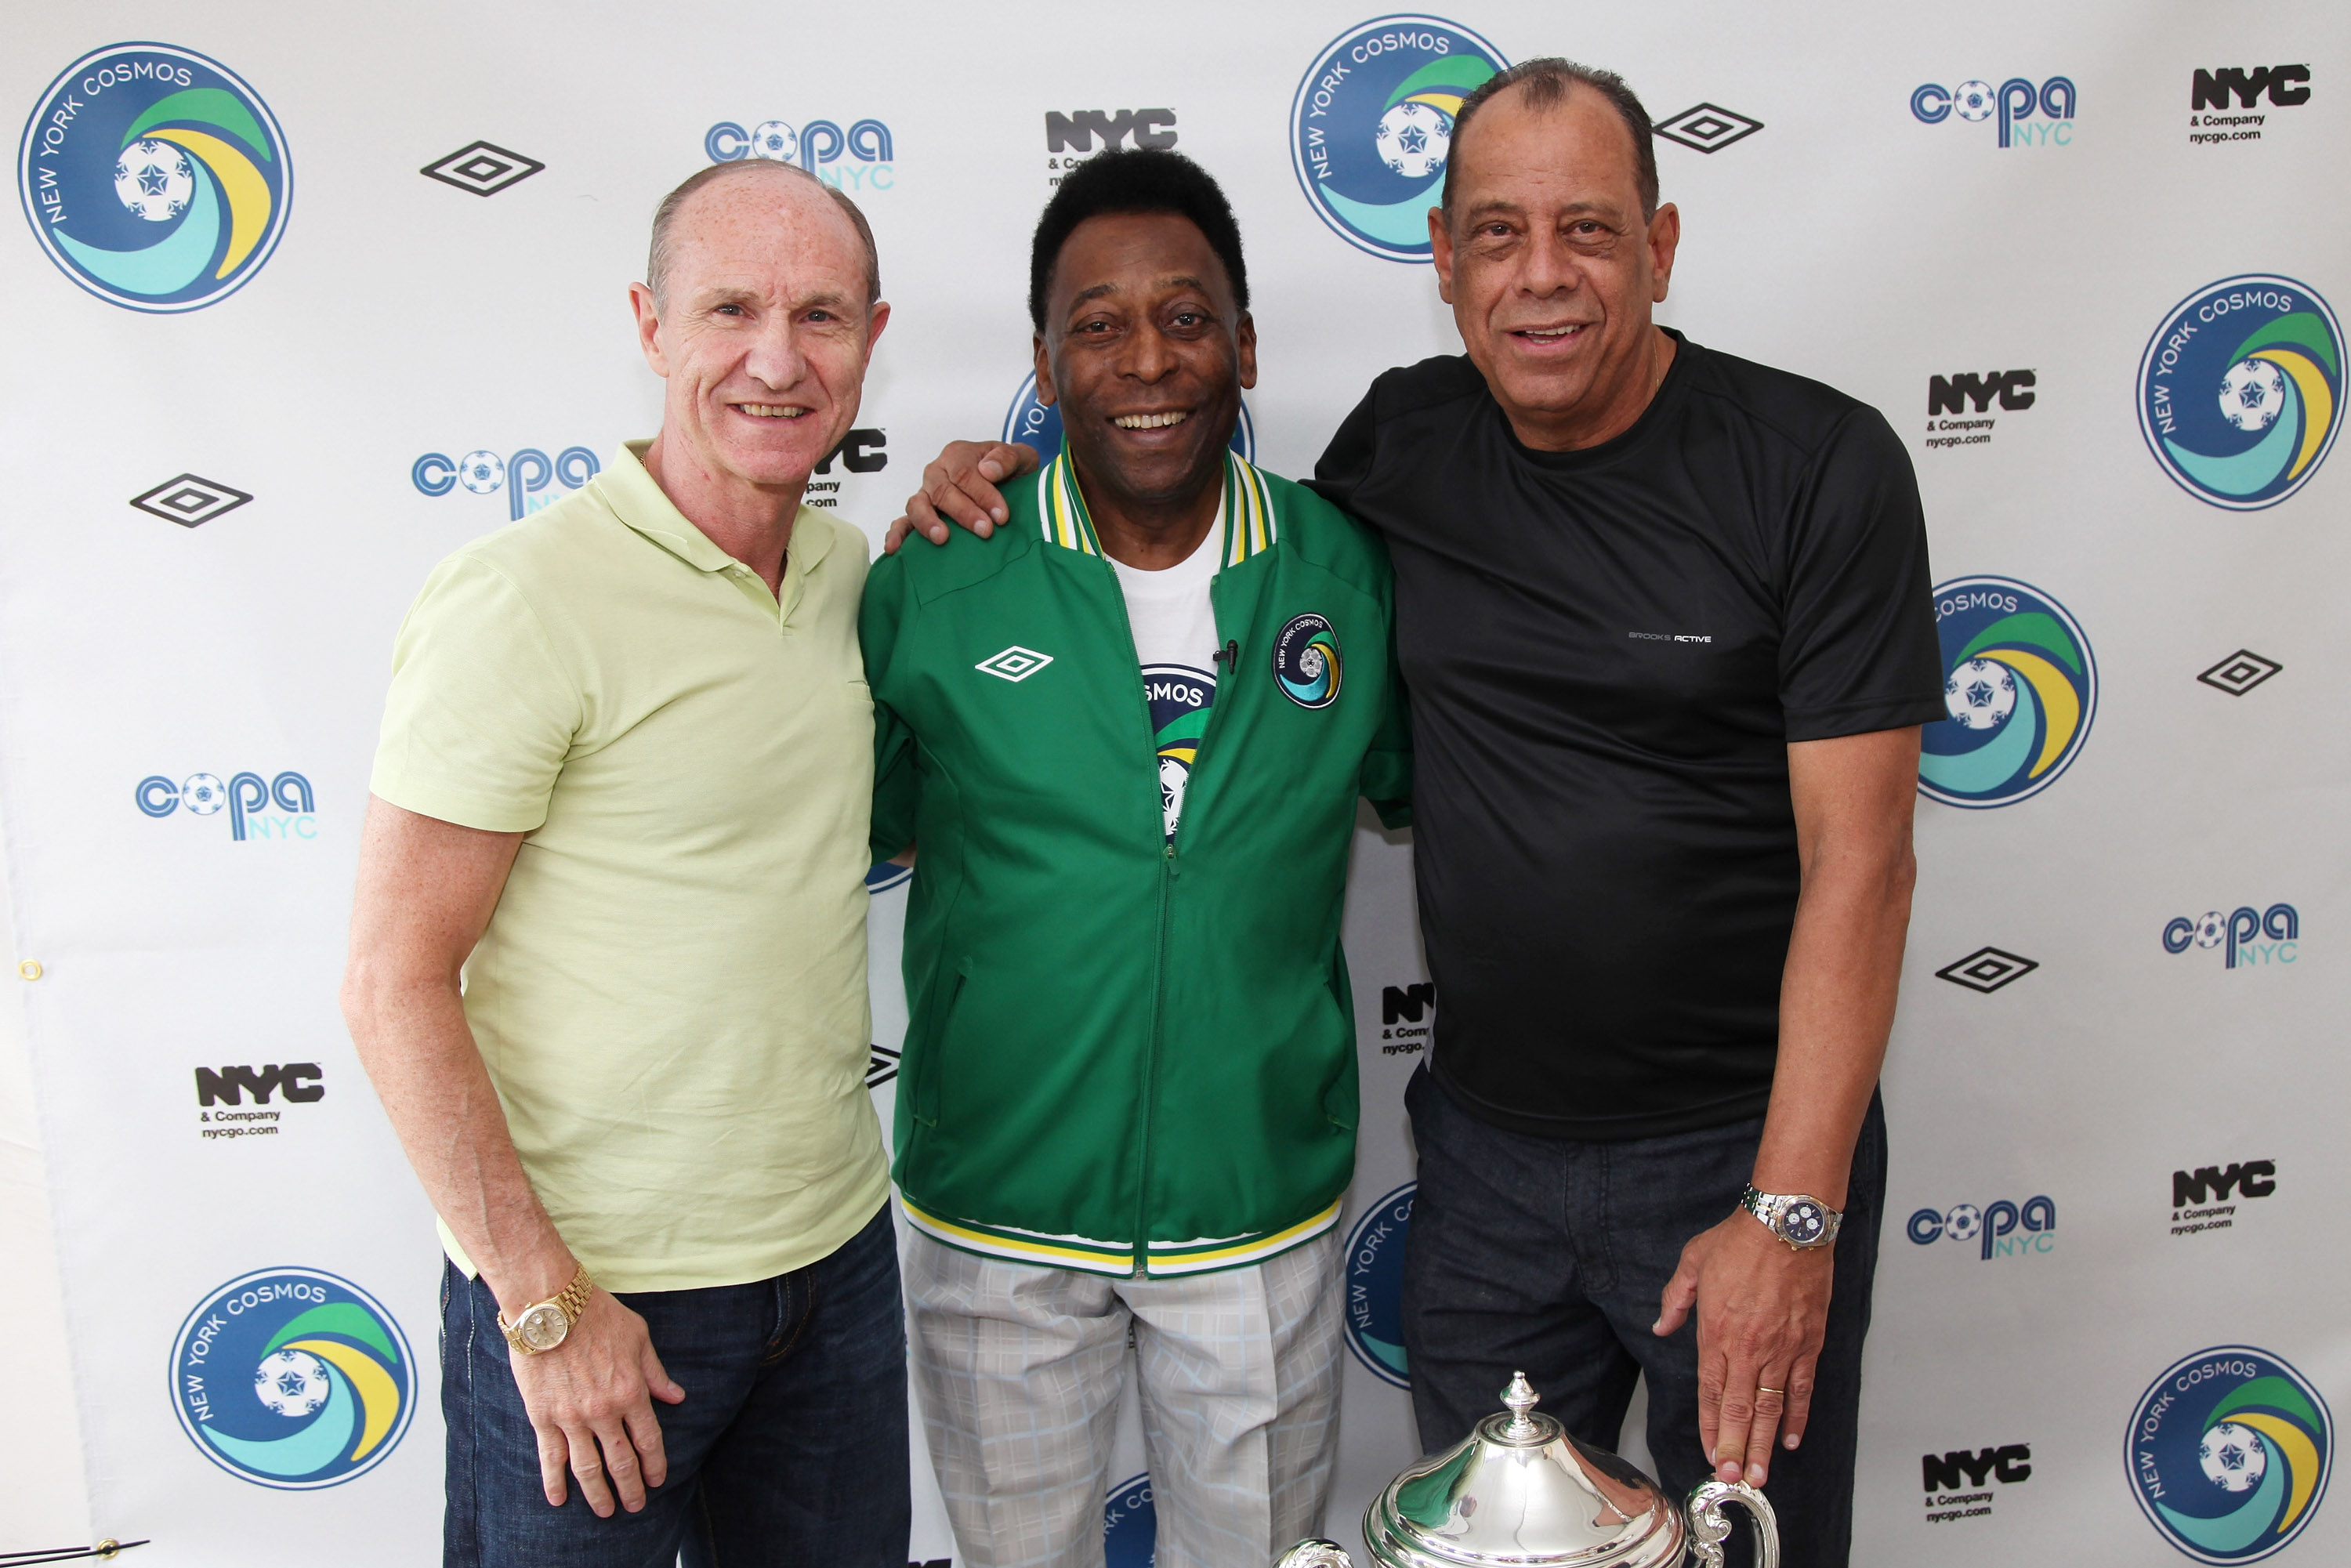 NEW YORK - AUGUST 01:  Soccer Legend Pele (C) and former team mates Dennis Tueart (L) and Carlos Alberto Torres (R)  pose for a photograph before the announcement of the return of the World Renowned New York Cosmos at Flushing Meadows Corona Park on Augus